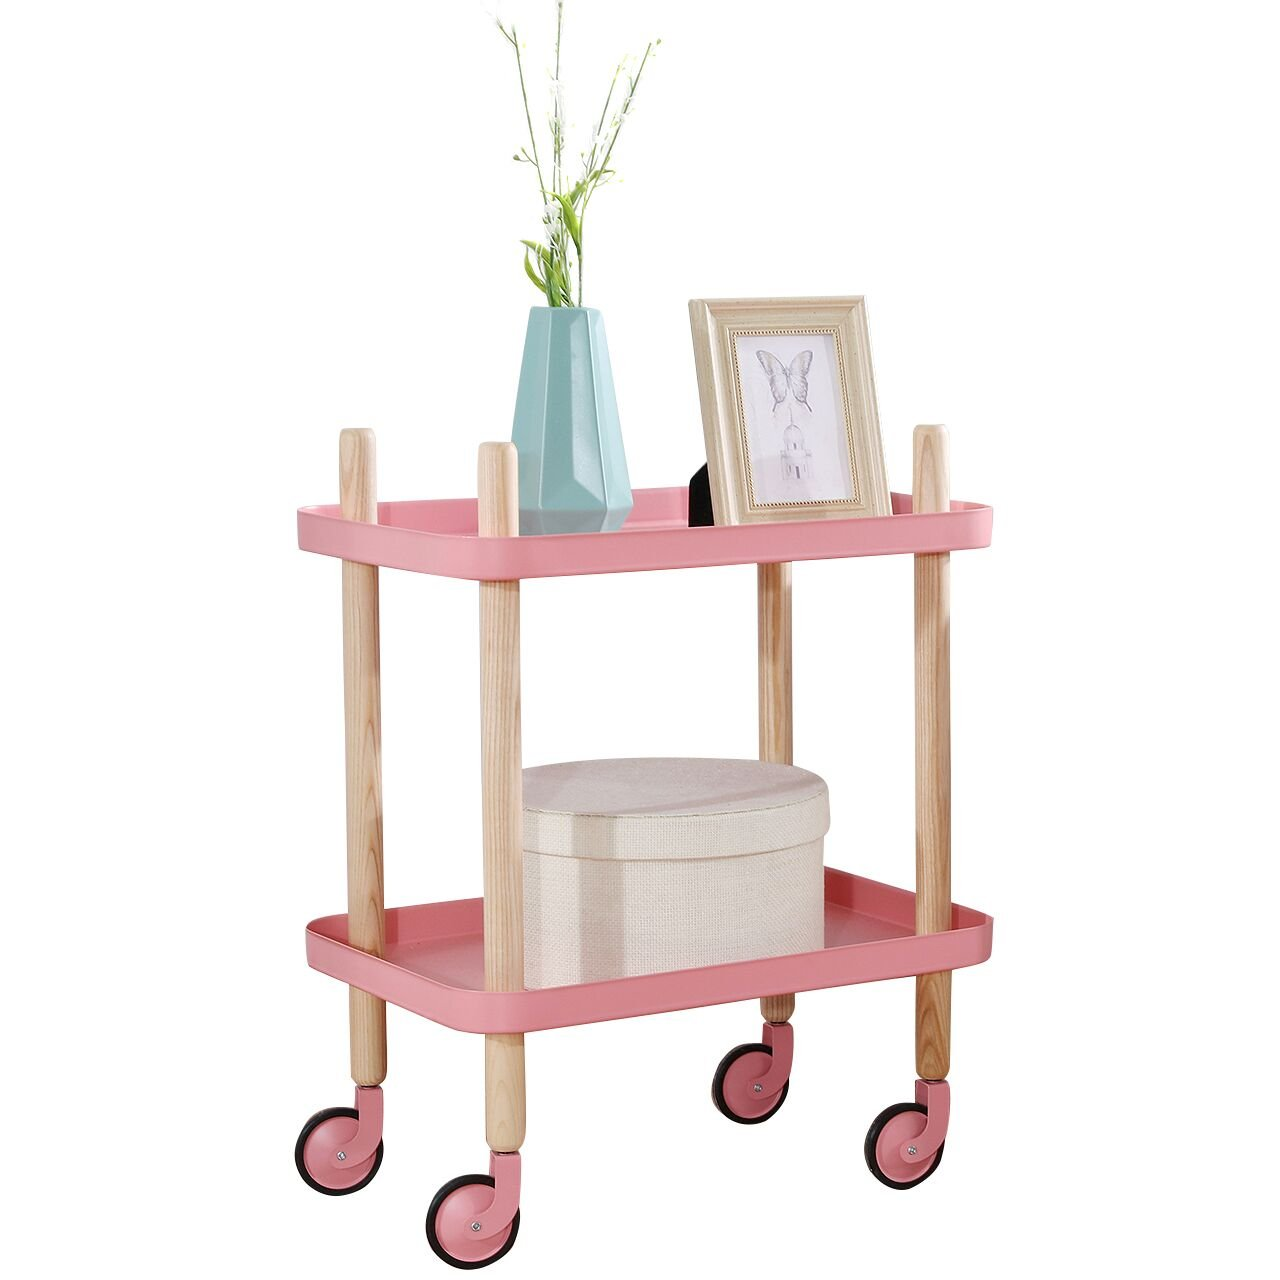 Sofa Table Side End Table with wheels, 2-Tier Metal Nightstand Utility Cart, Bathroom Storage Cart by Clothink, Pink